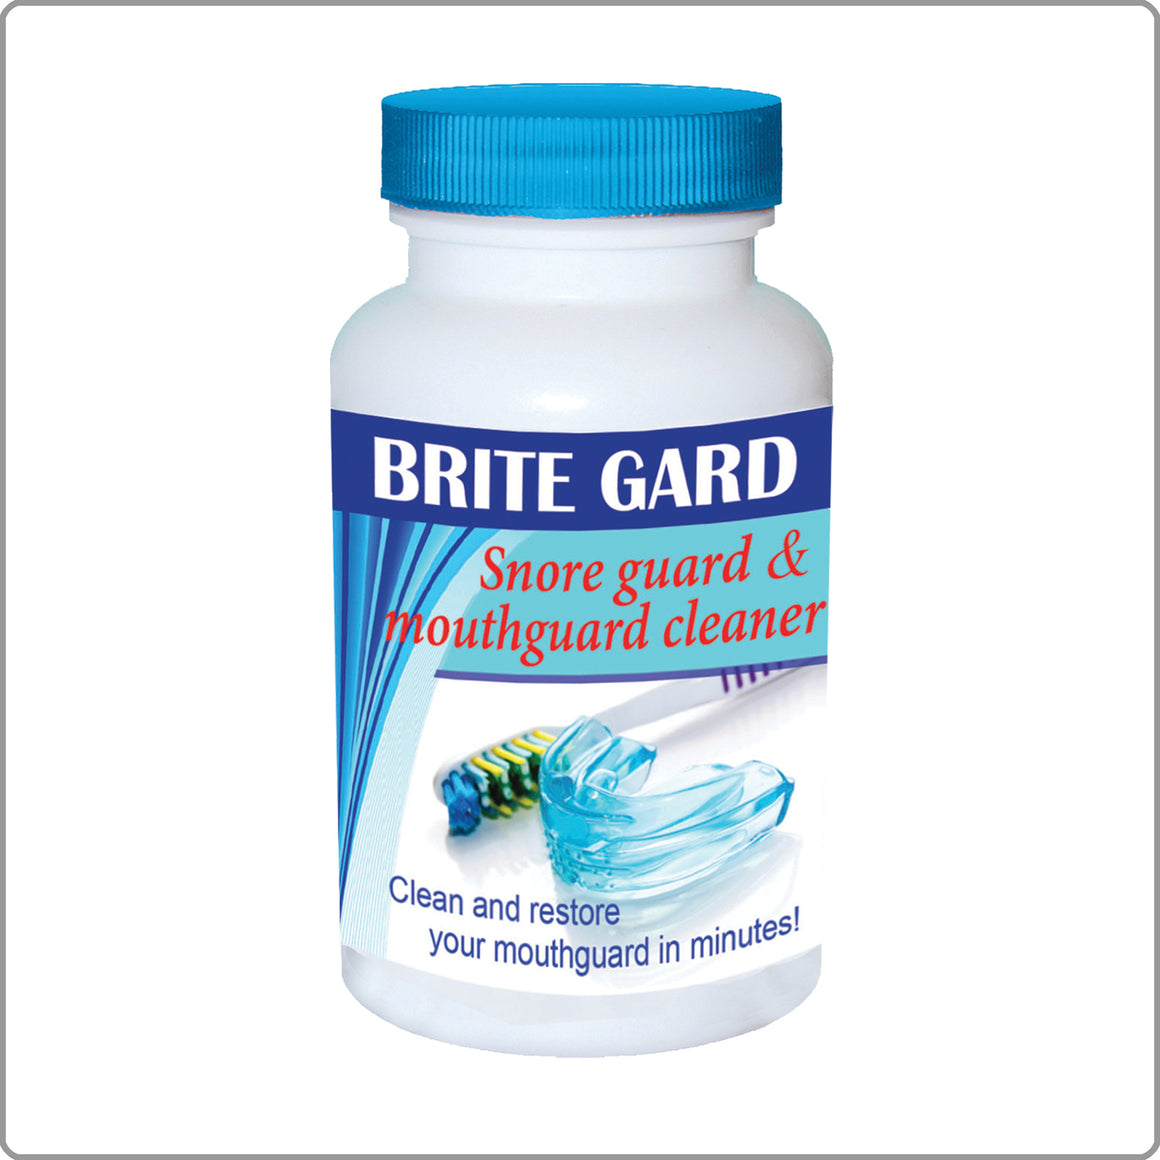 8 oz. Bright Gard - Mouth Guard Cleaner